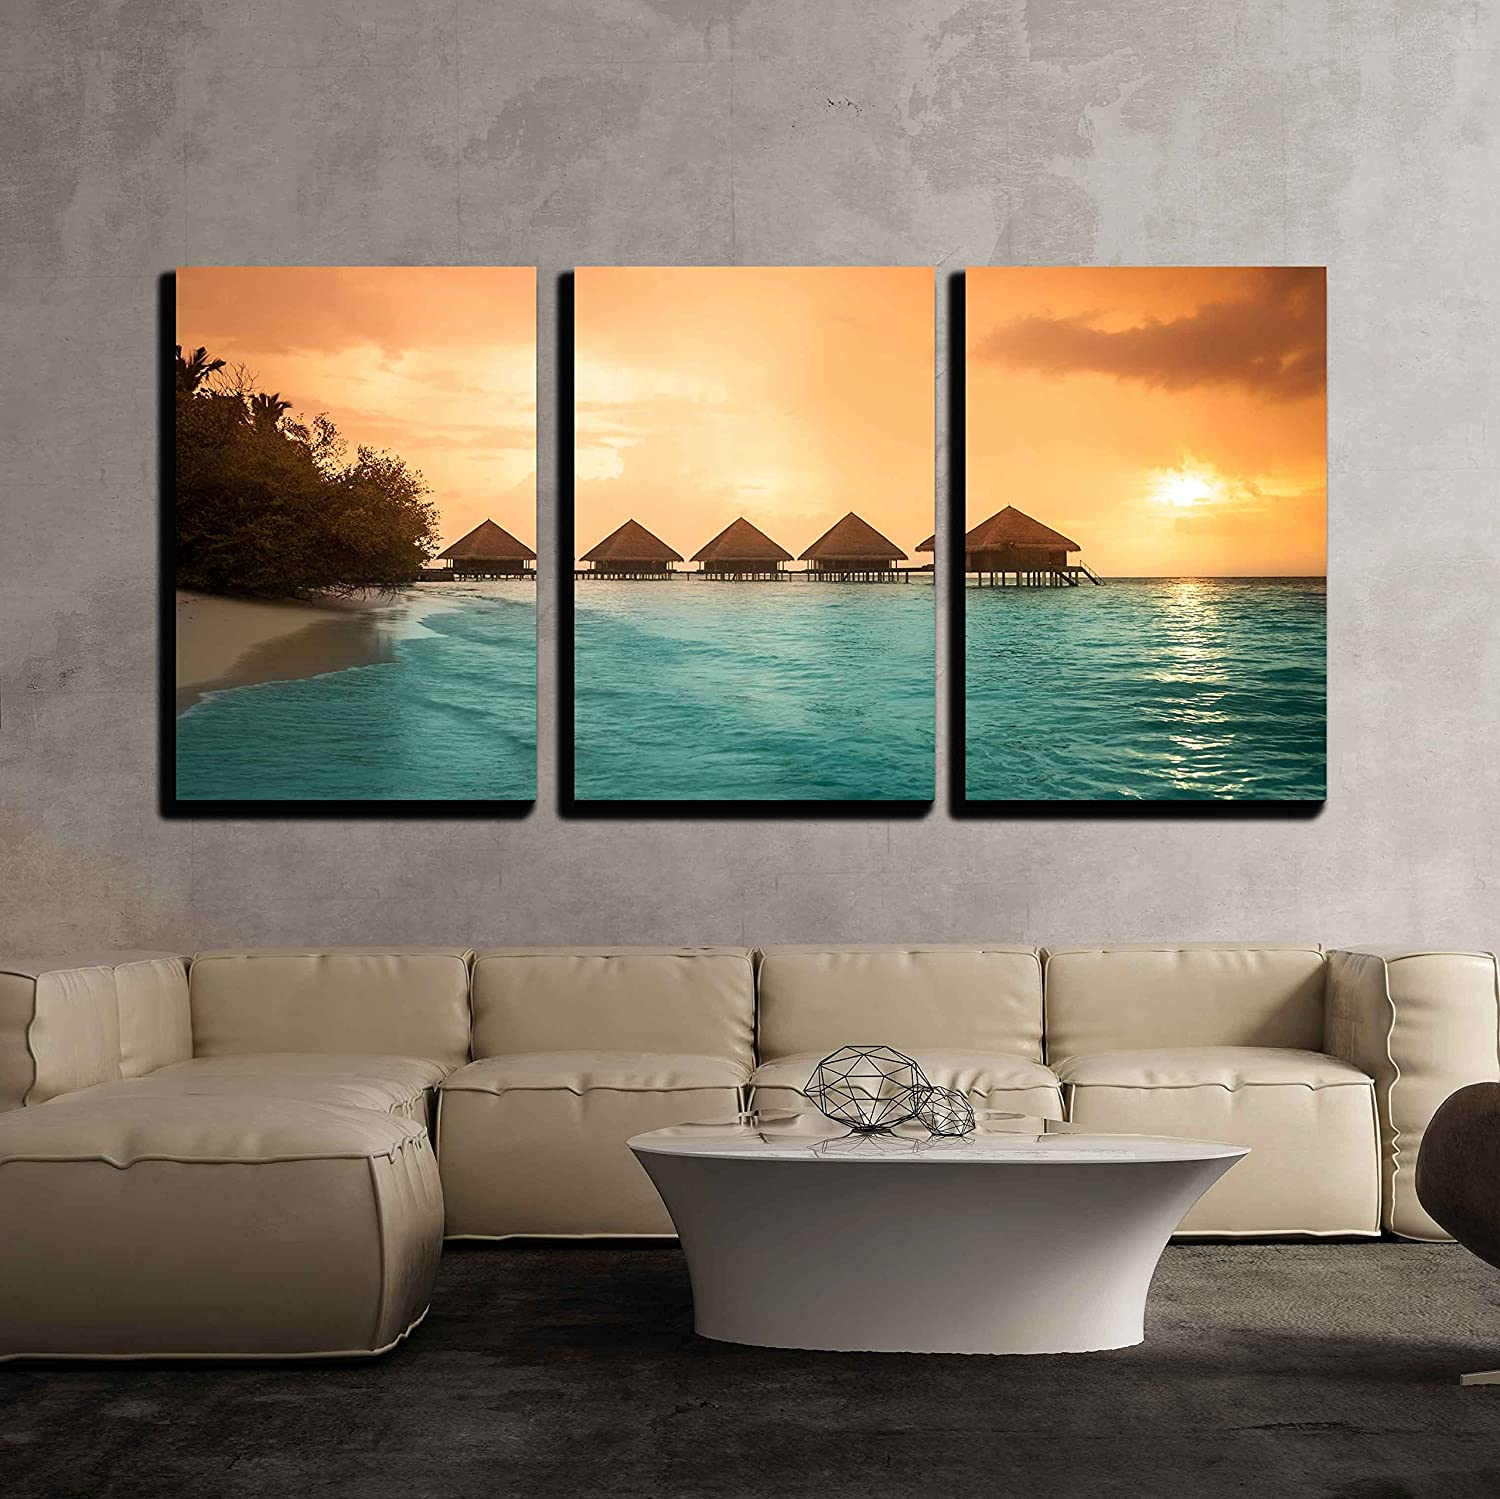 "wall26 - 3 Piece Canvas Wall Art - Over Water Bungalows with Steps into Amazing Green Lagoon - Modern Home Art Stretched and Framed Ready to Hang - 16""x24""x3 Panels"